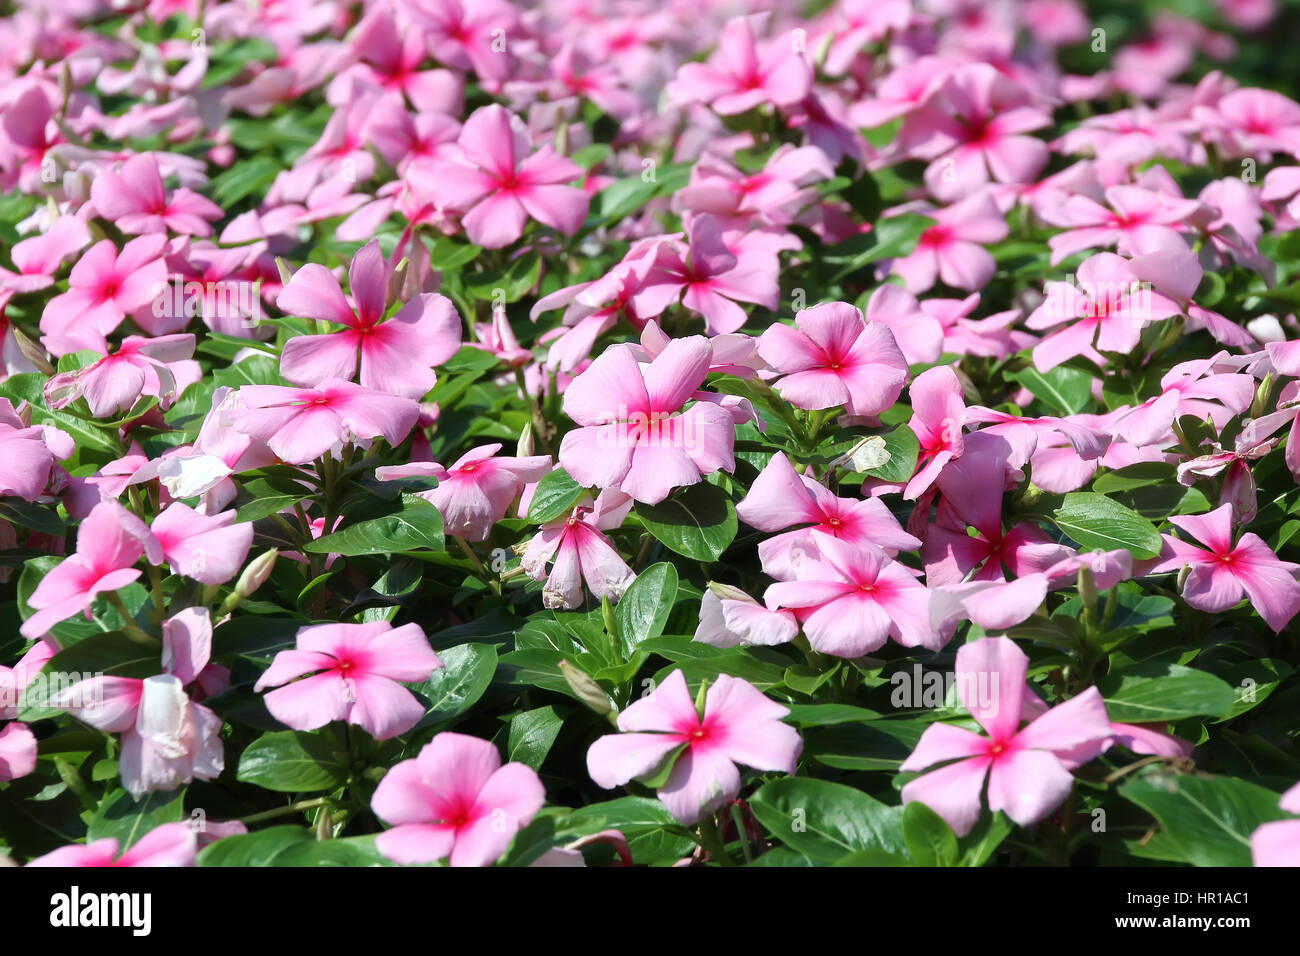 Pink Periwinkle Flower In The Garden Stock Photo 134639793 Alamy